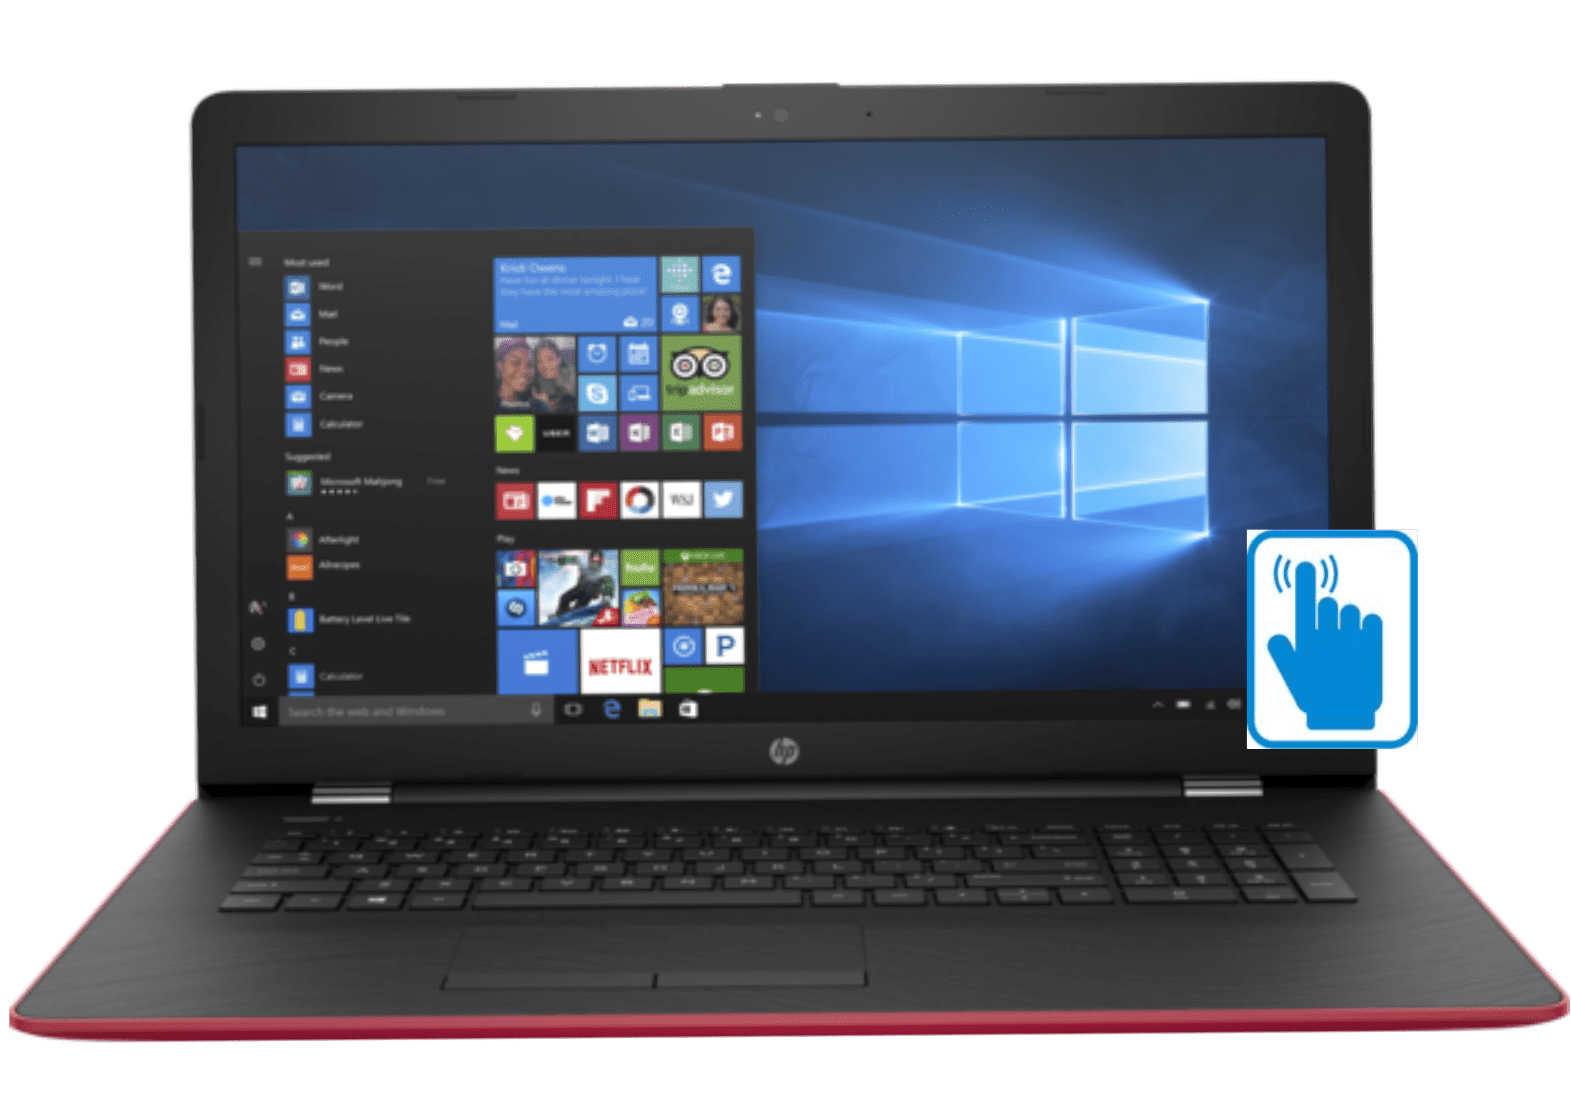 """HP 17z Laptop 17.3"""" with HD Touchscreen Laptop PC (AMD A6 Processor, AMD Radeon R4 Graphics, 8GB RAM, 1TB... by MichaelElectronics2"""